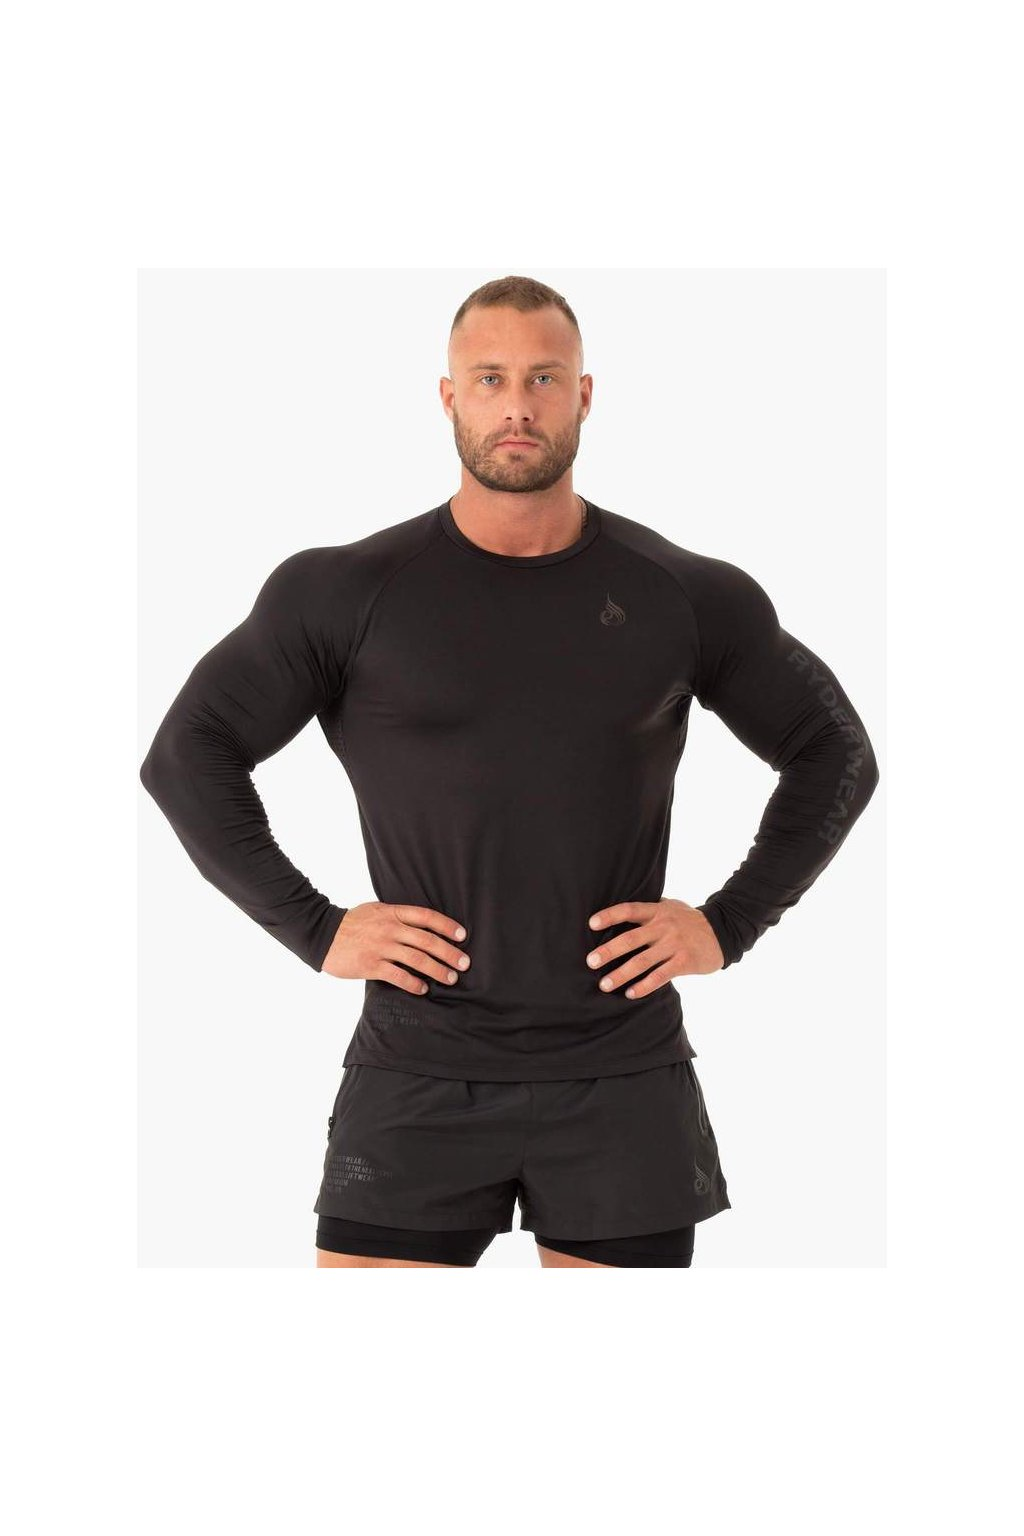 LONG SLEEVE TOP GRAPHITE 1 1000x1000